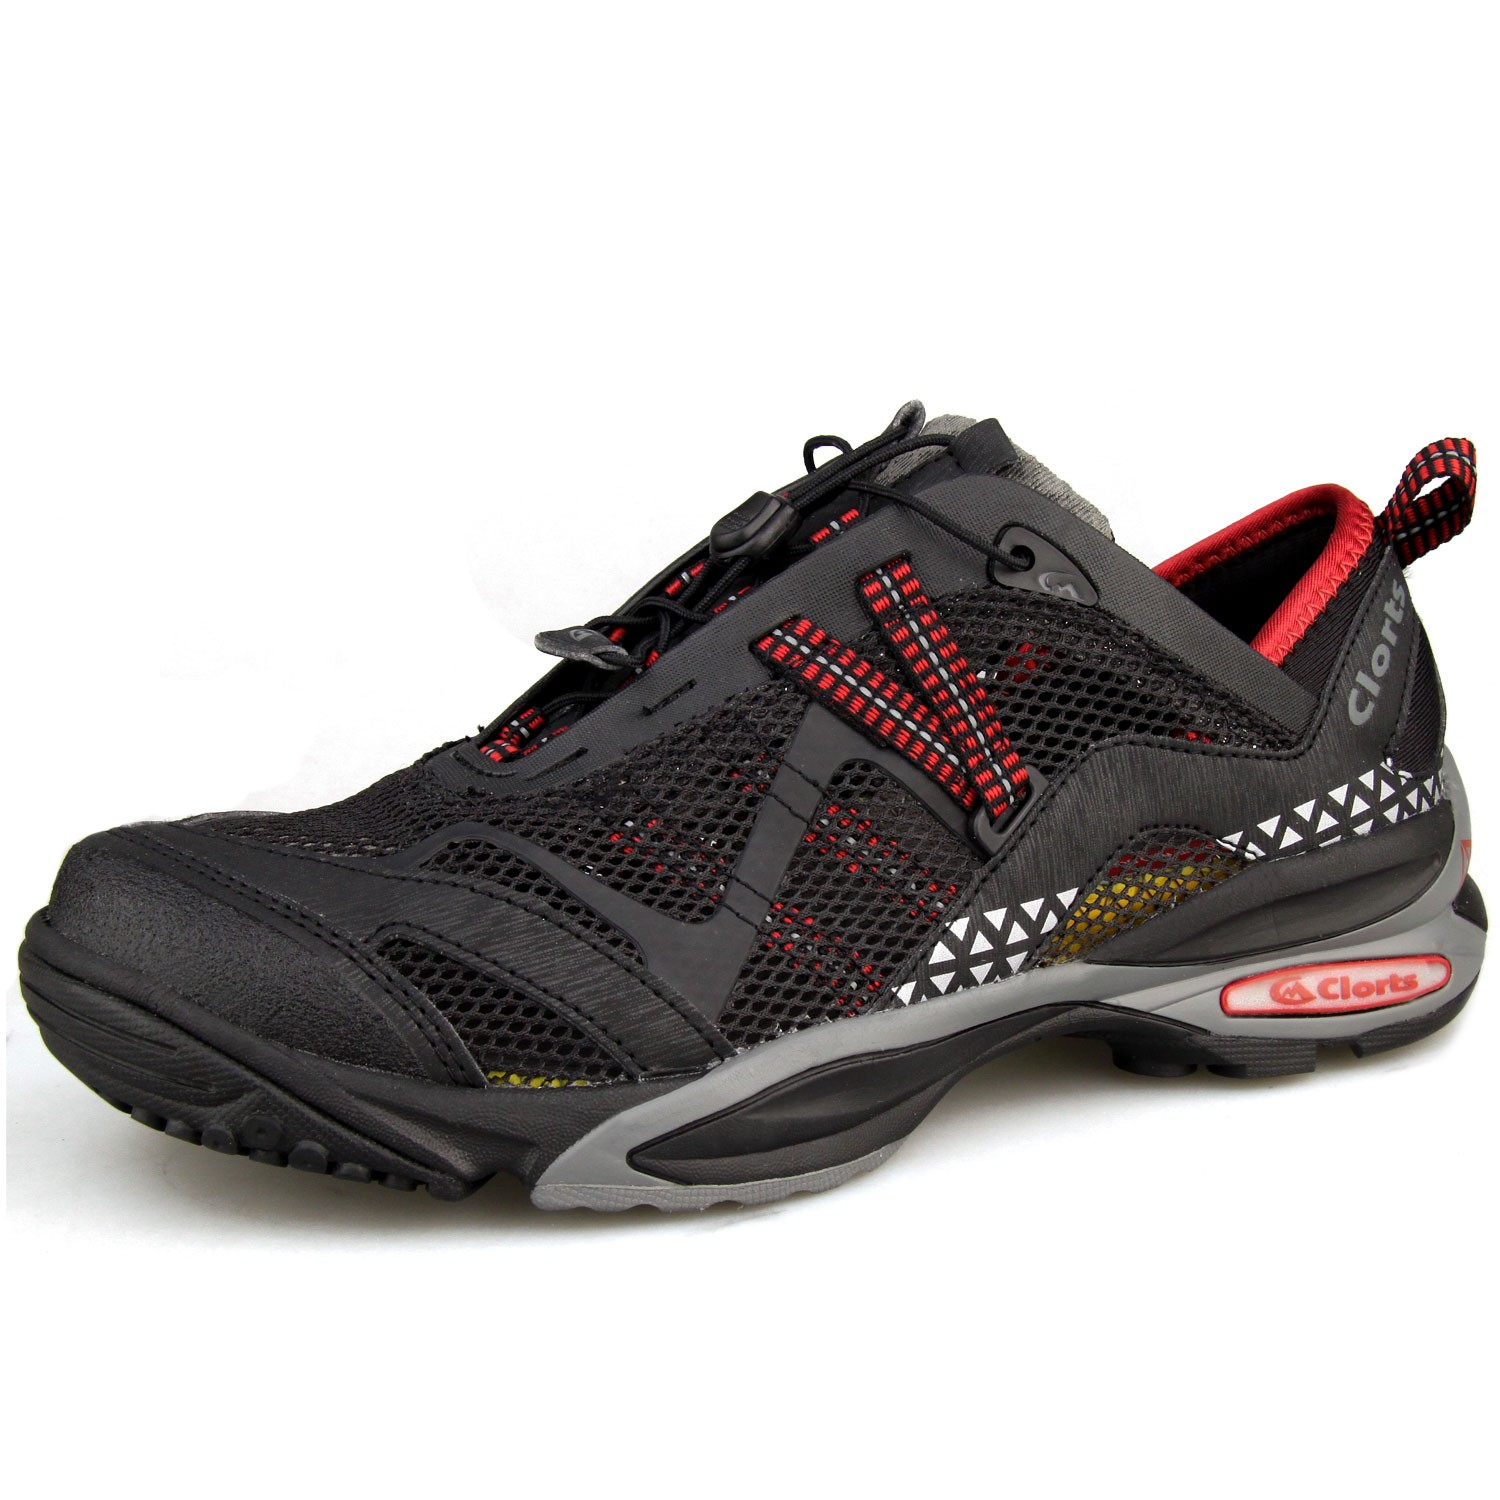 Mens Canyoneering Water Shoes Manufacturers, Mens Canyoneering Water Shoes Factory, Supply Mens Canyoneering Water Shoes